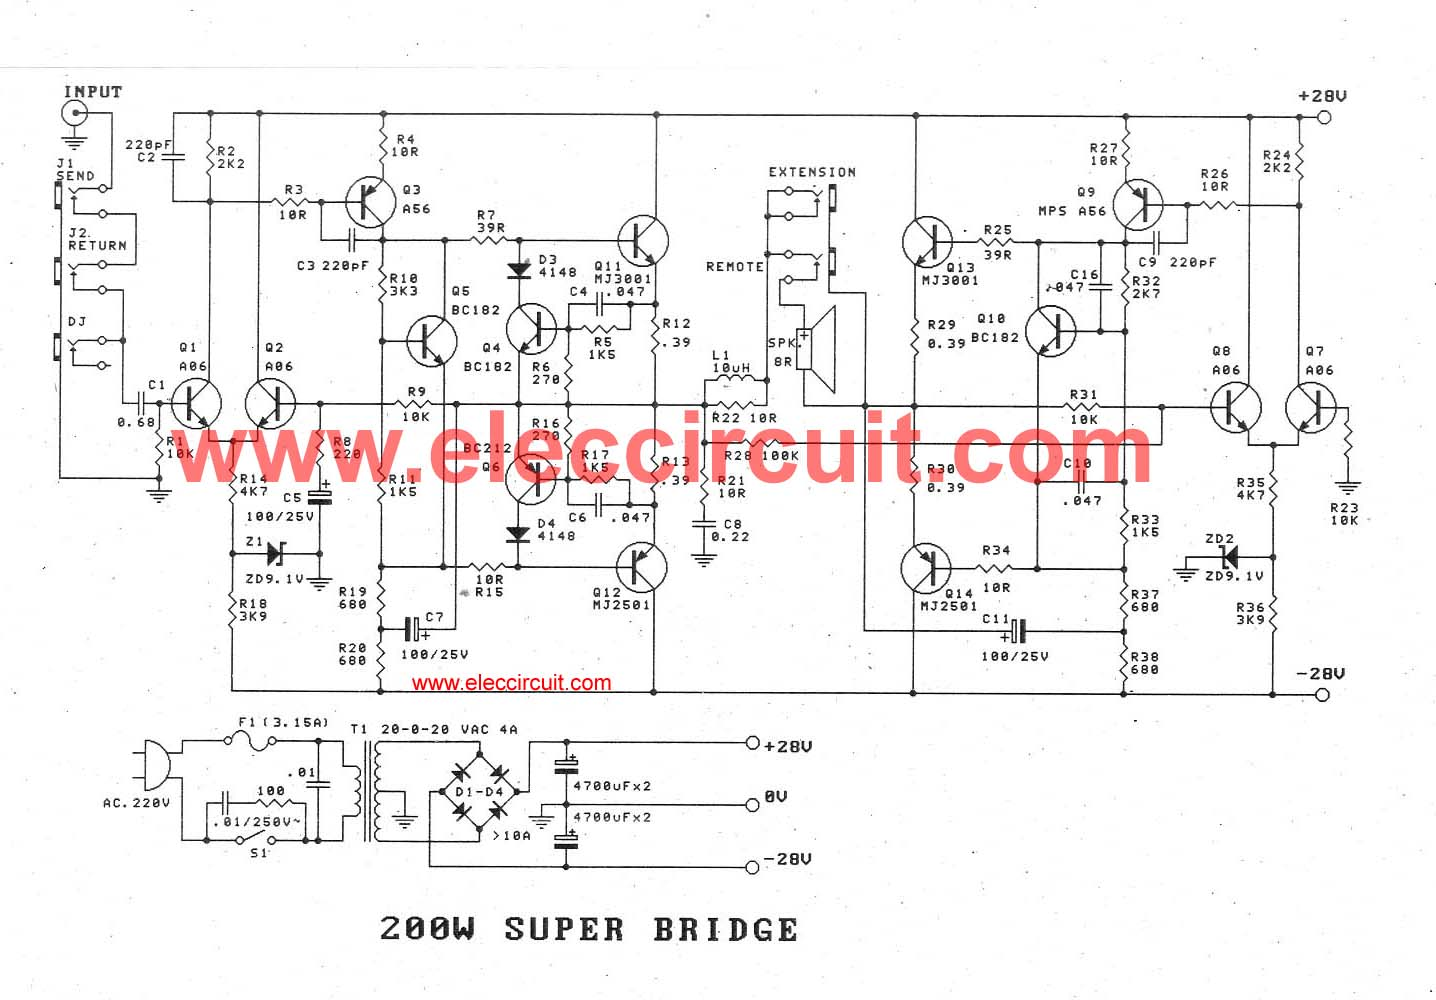 High power amplifier circuit ideas using transistors, 100W